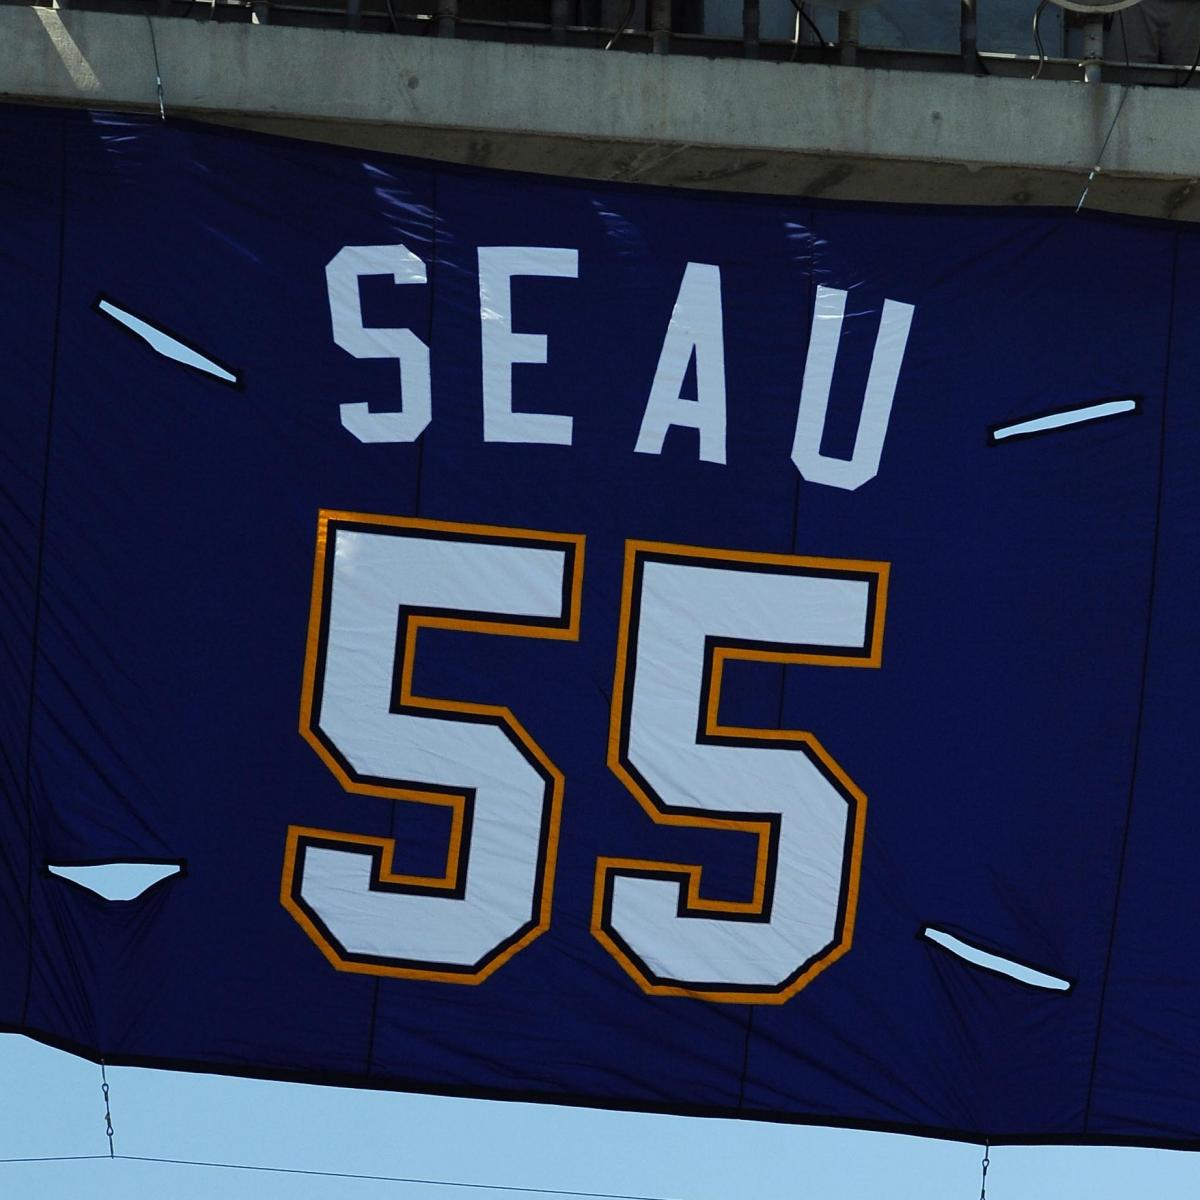 San Diego Chargers Home Schedule: San Diego Chargers To Retire Junior Seau's Number 55